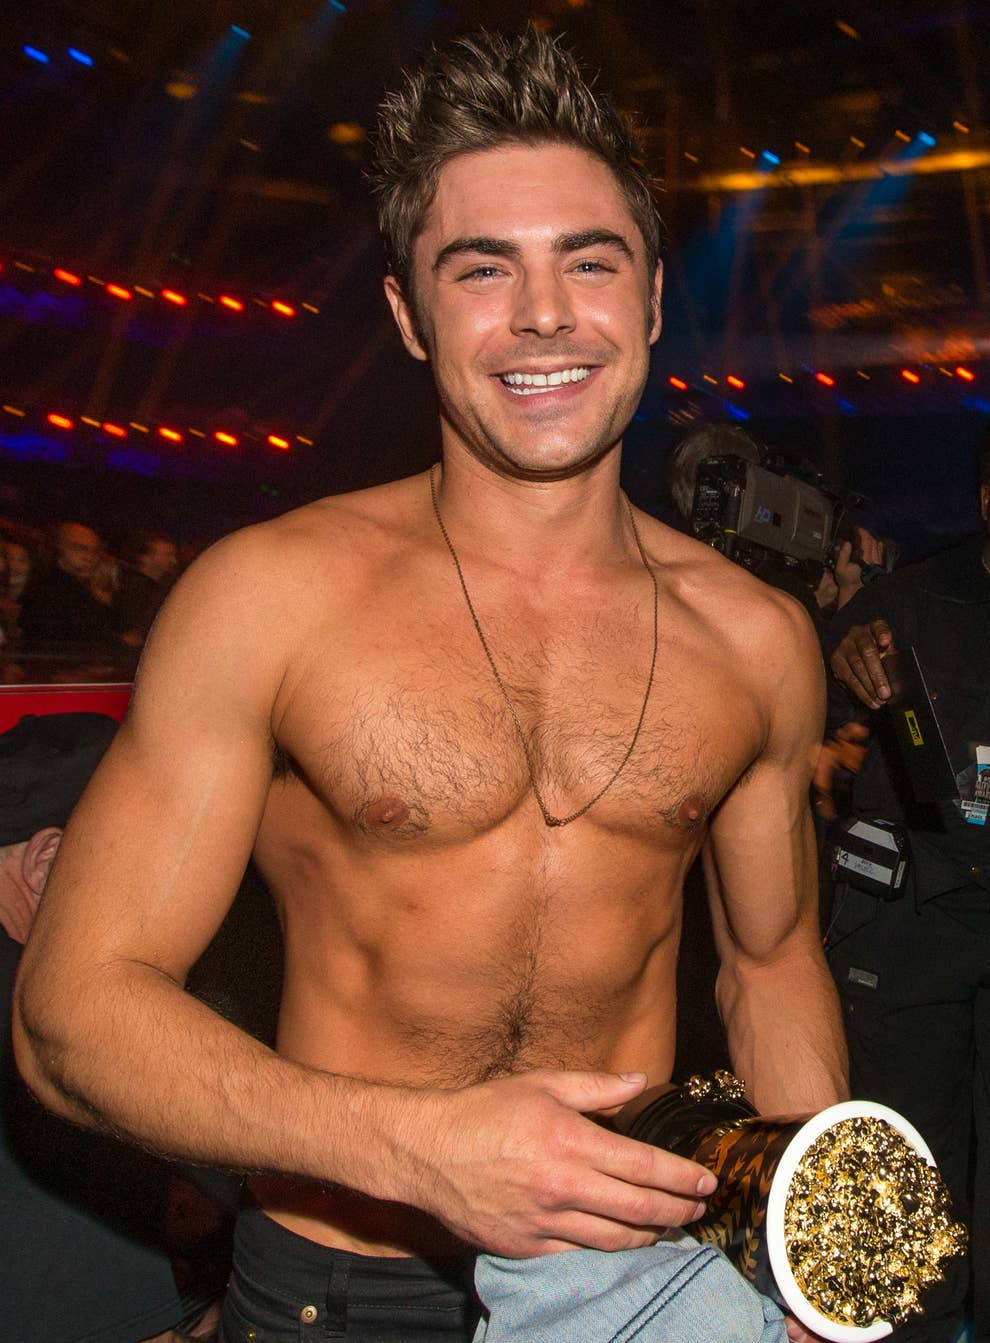 Alyssa Labelle Hot zac efron posted a picture with his brother and the internet